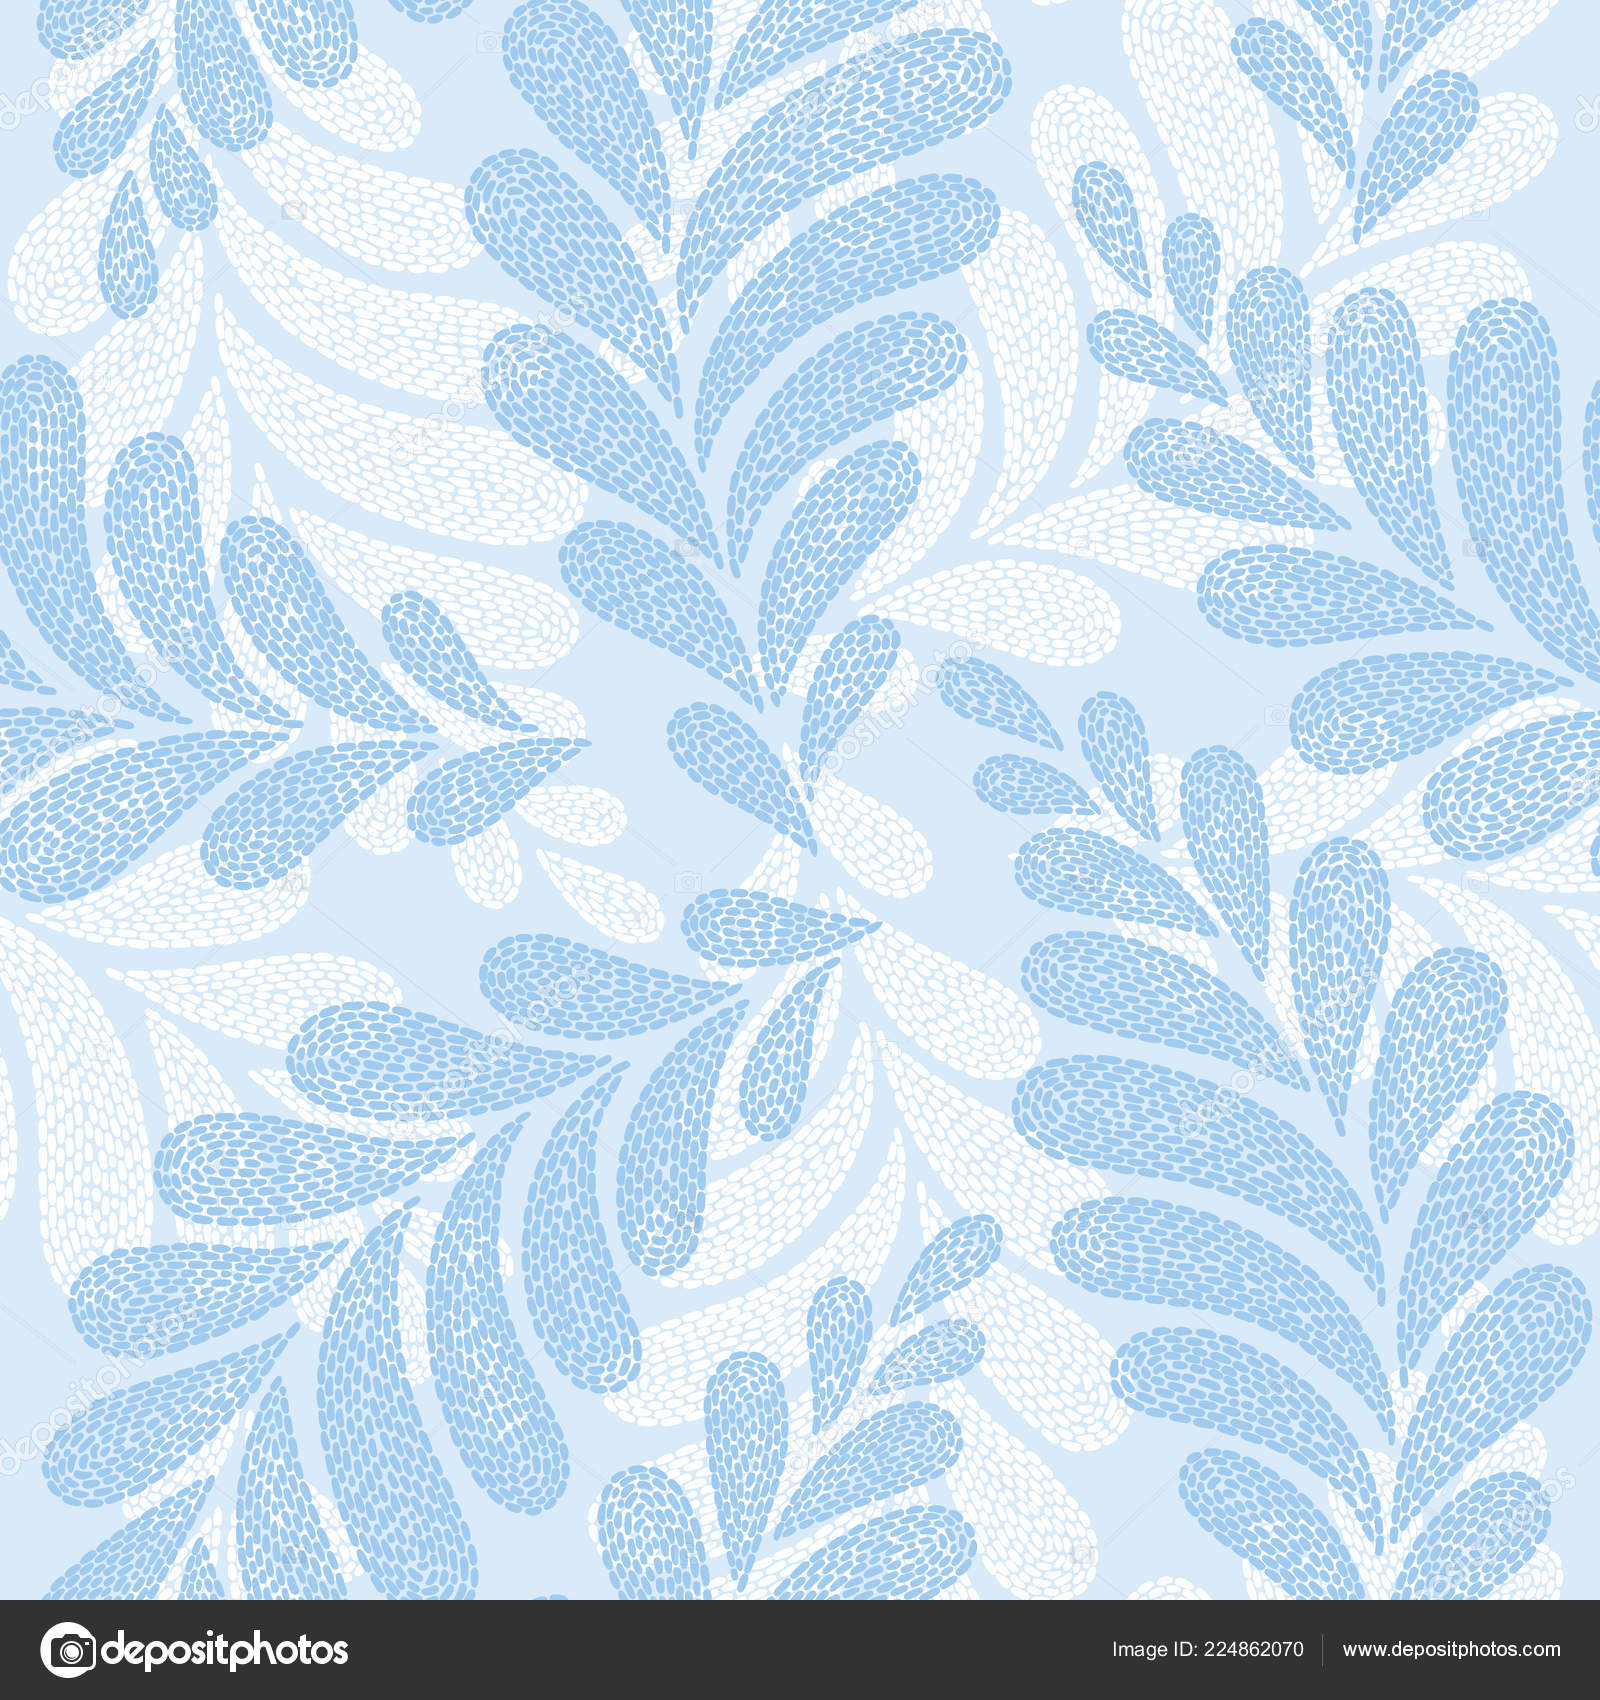 Vintage Embroidery Floral Fabric Texture Simple Seamless Background